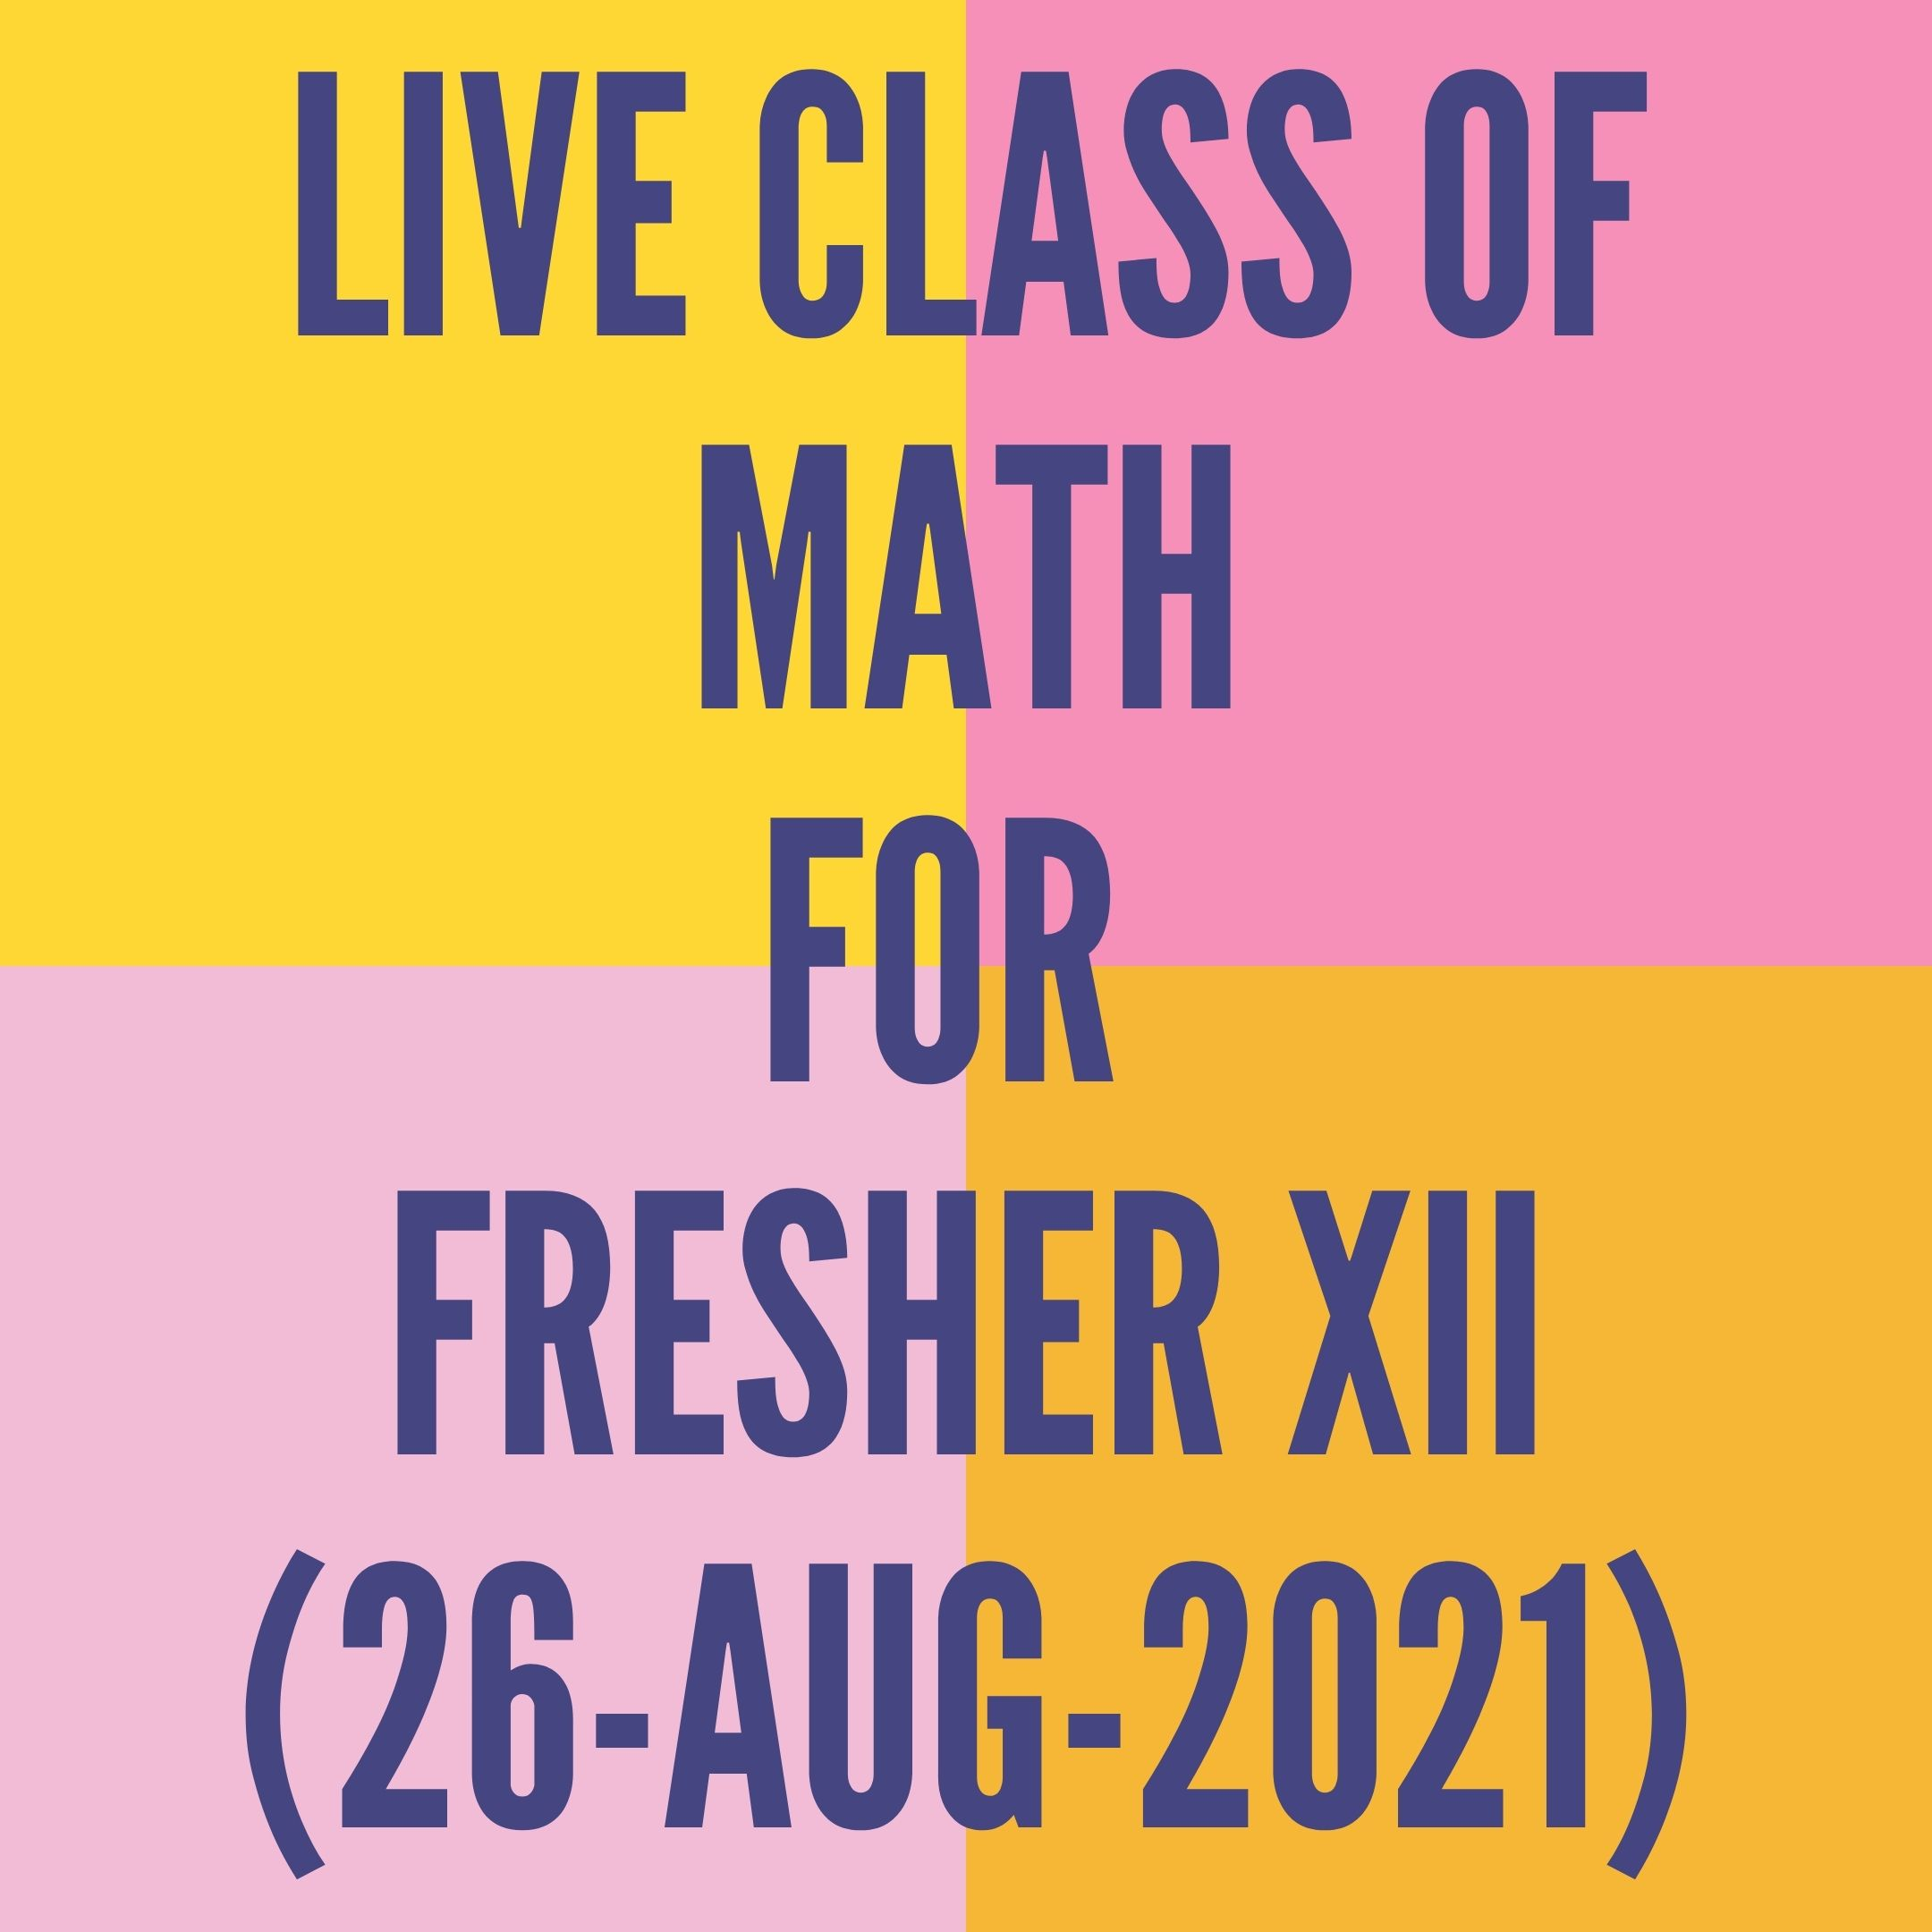 LIVE CLASS OF MATH FOR FRESHER (26-AUG-2021)